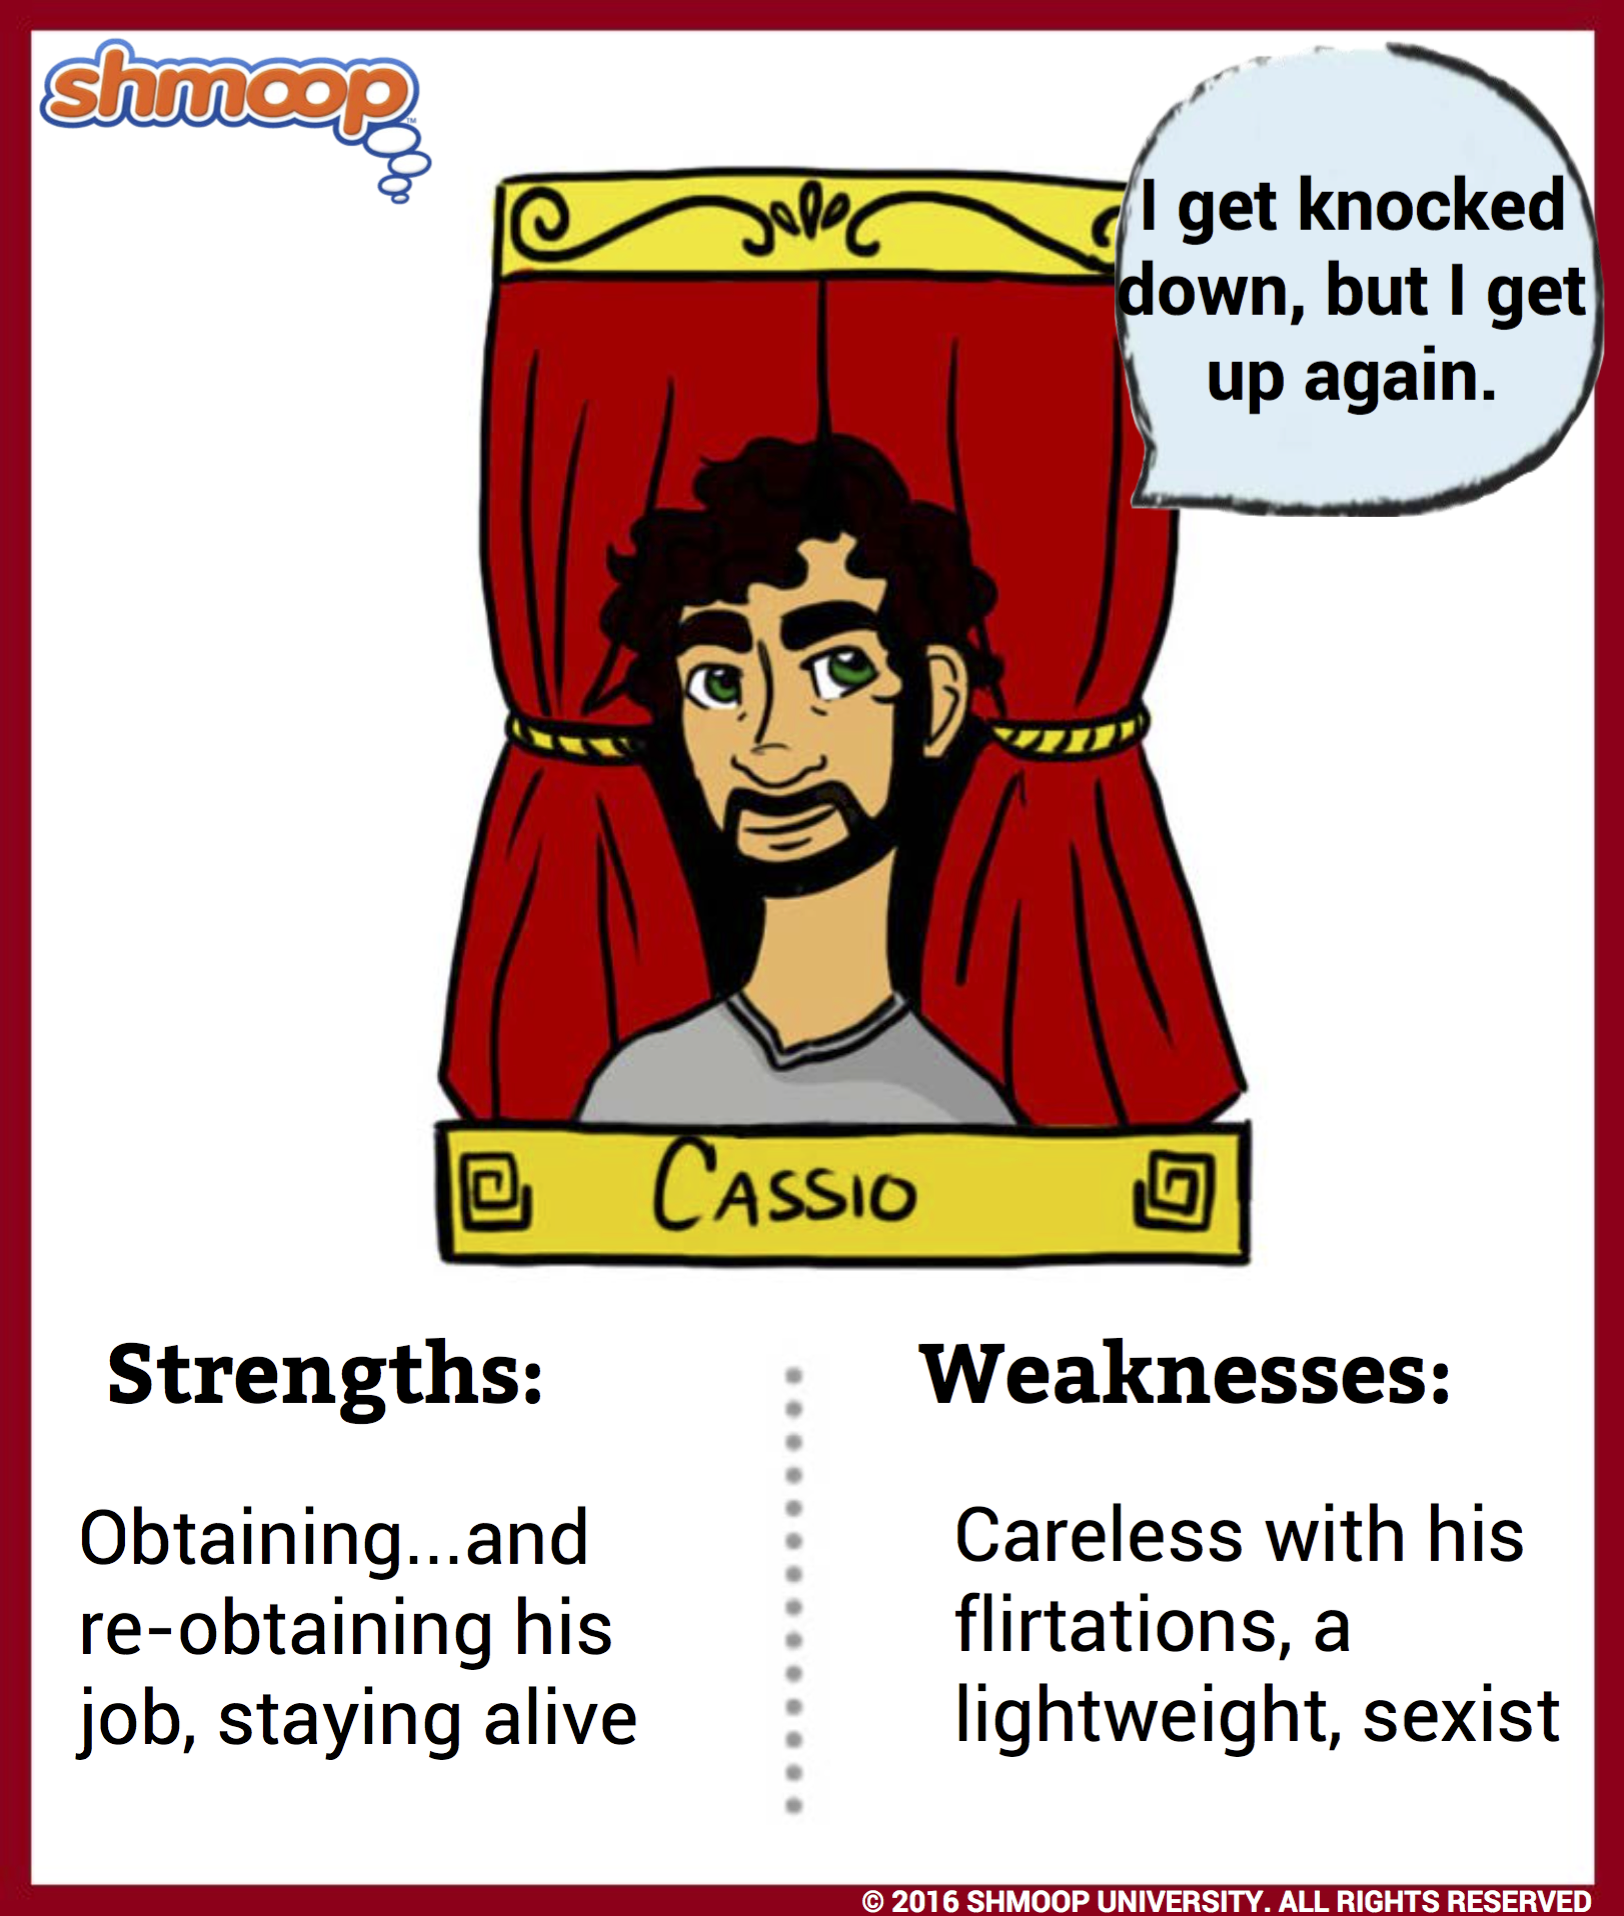 the theme of evil in shakespeares othello essay Read this full essay on the theme of evil in shakespeare's othello just what is evil in shakespeare's play iagos will for revenge on cassio, who has be.